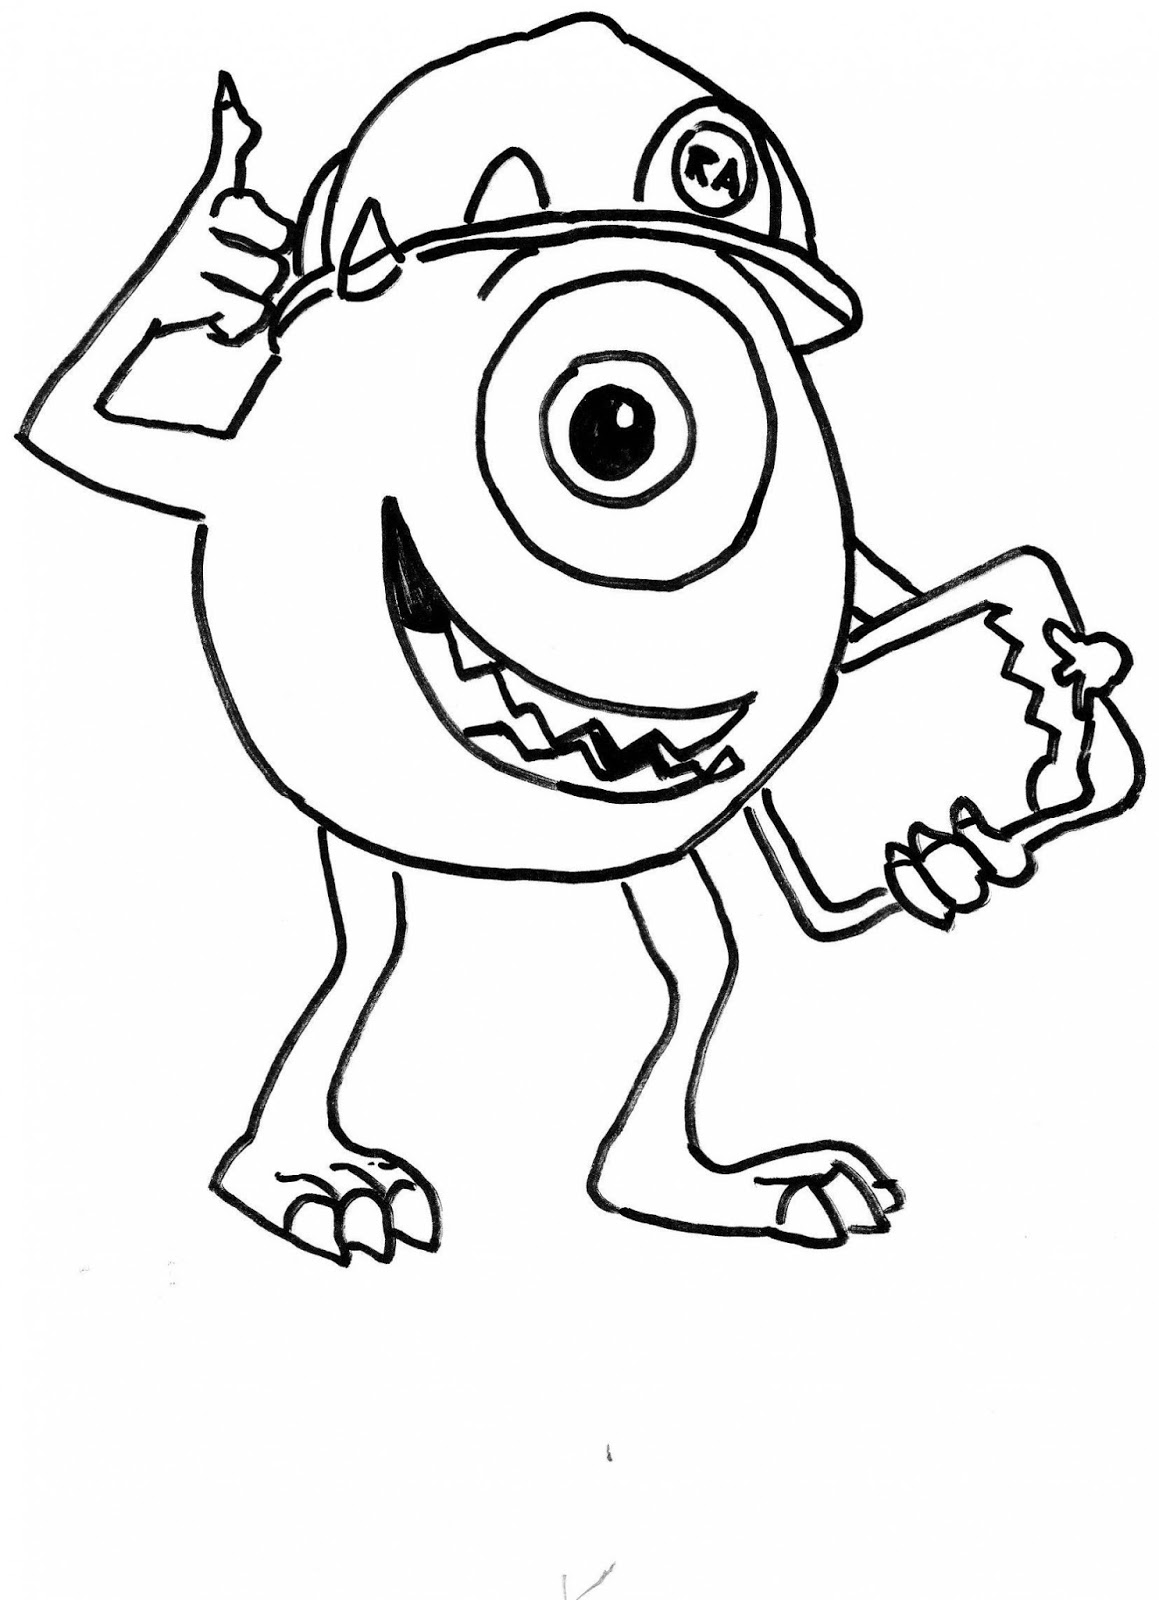 Monster inc para colorear e imprimir - Imagui